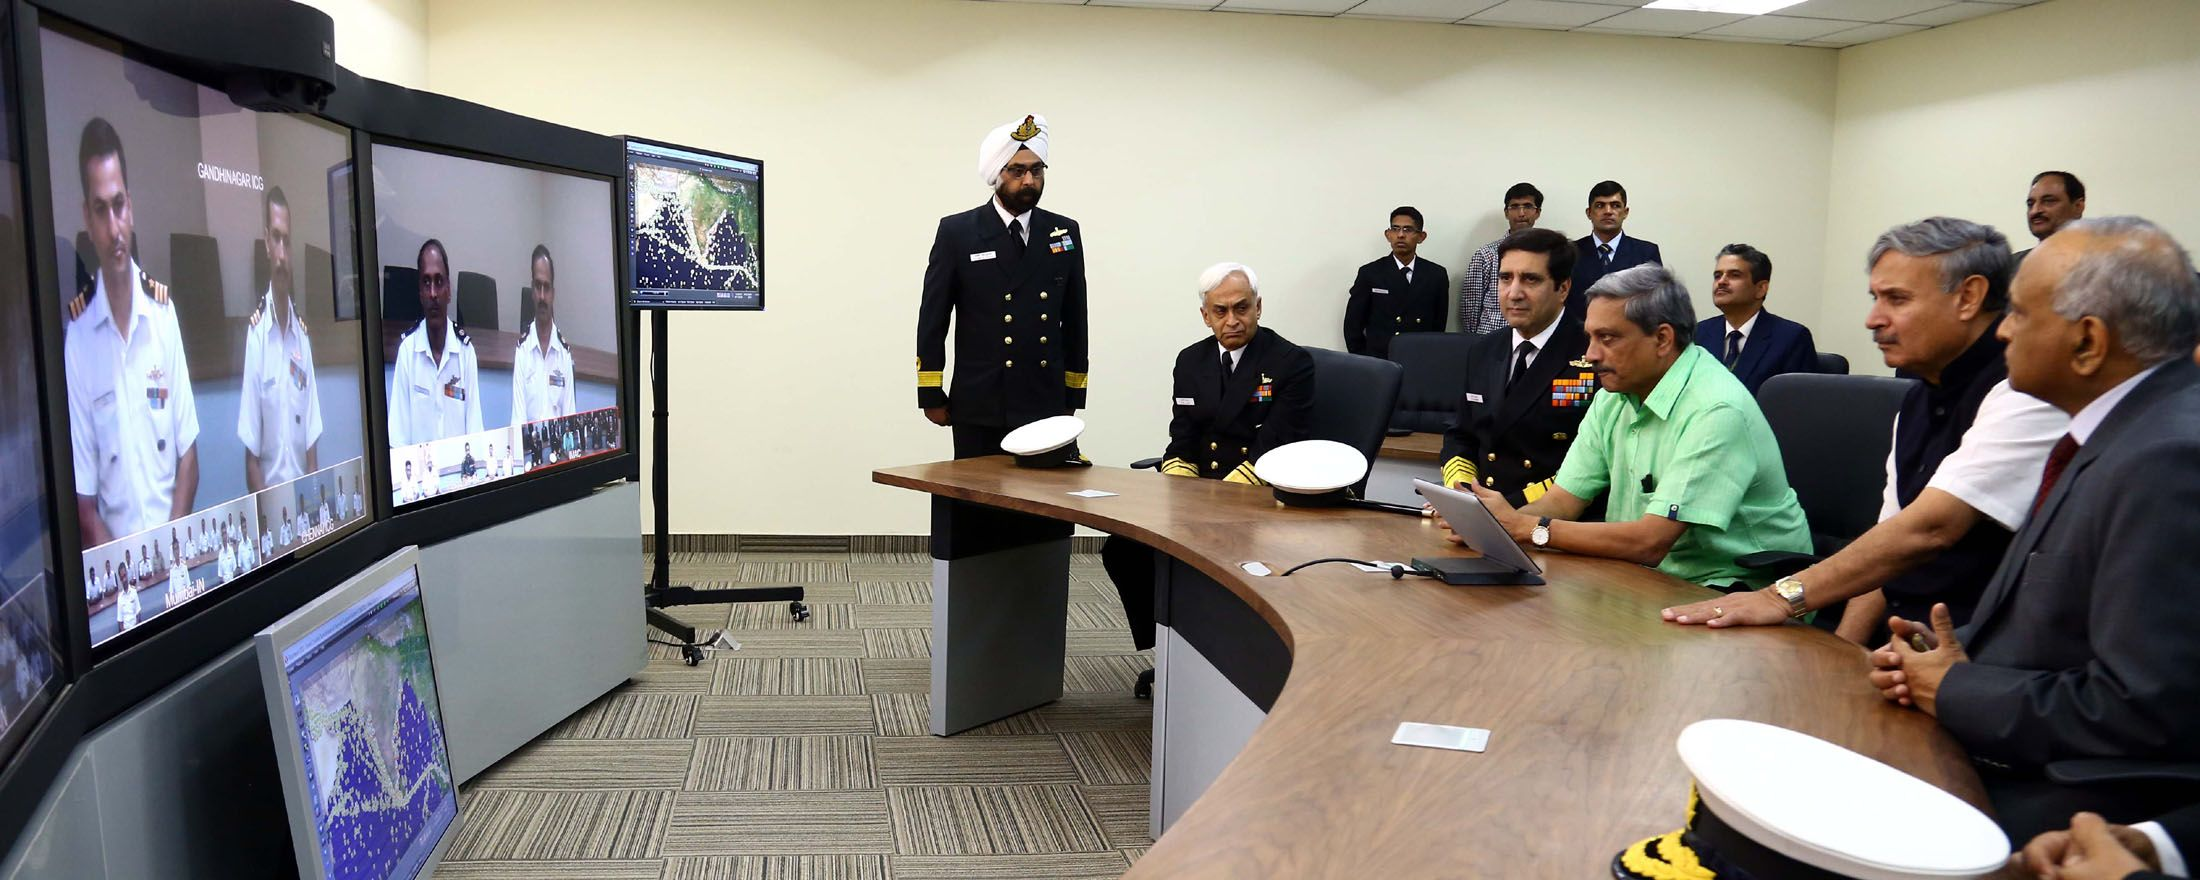 Defence Minister Shri Manohar Parrikar Inaugurates IMAC, a Navy-CG Joint Operations Centre